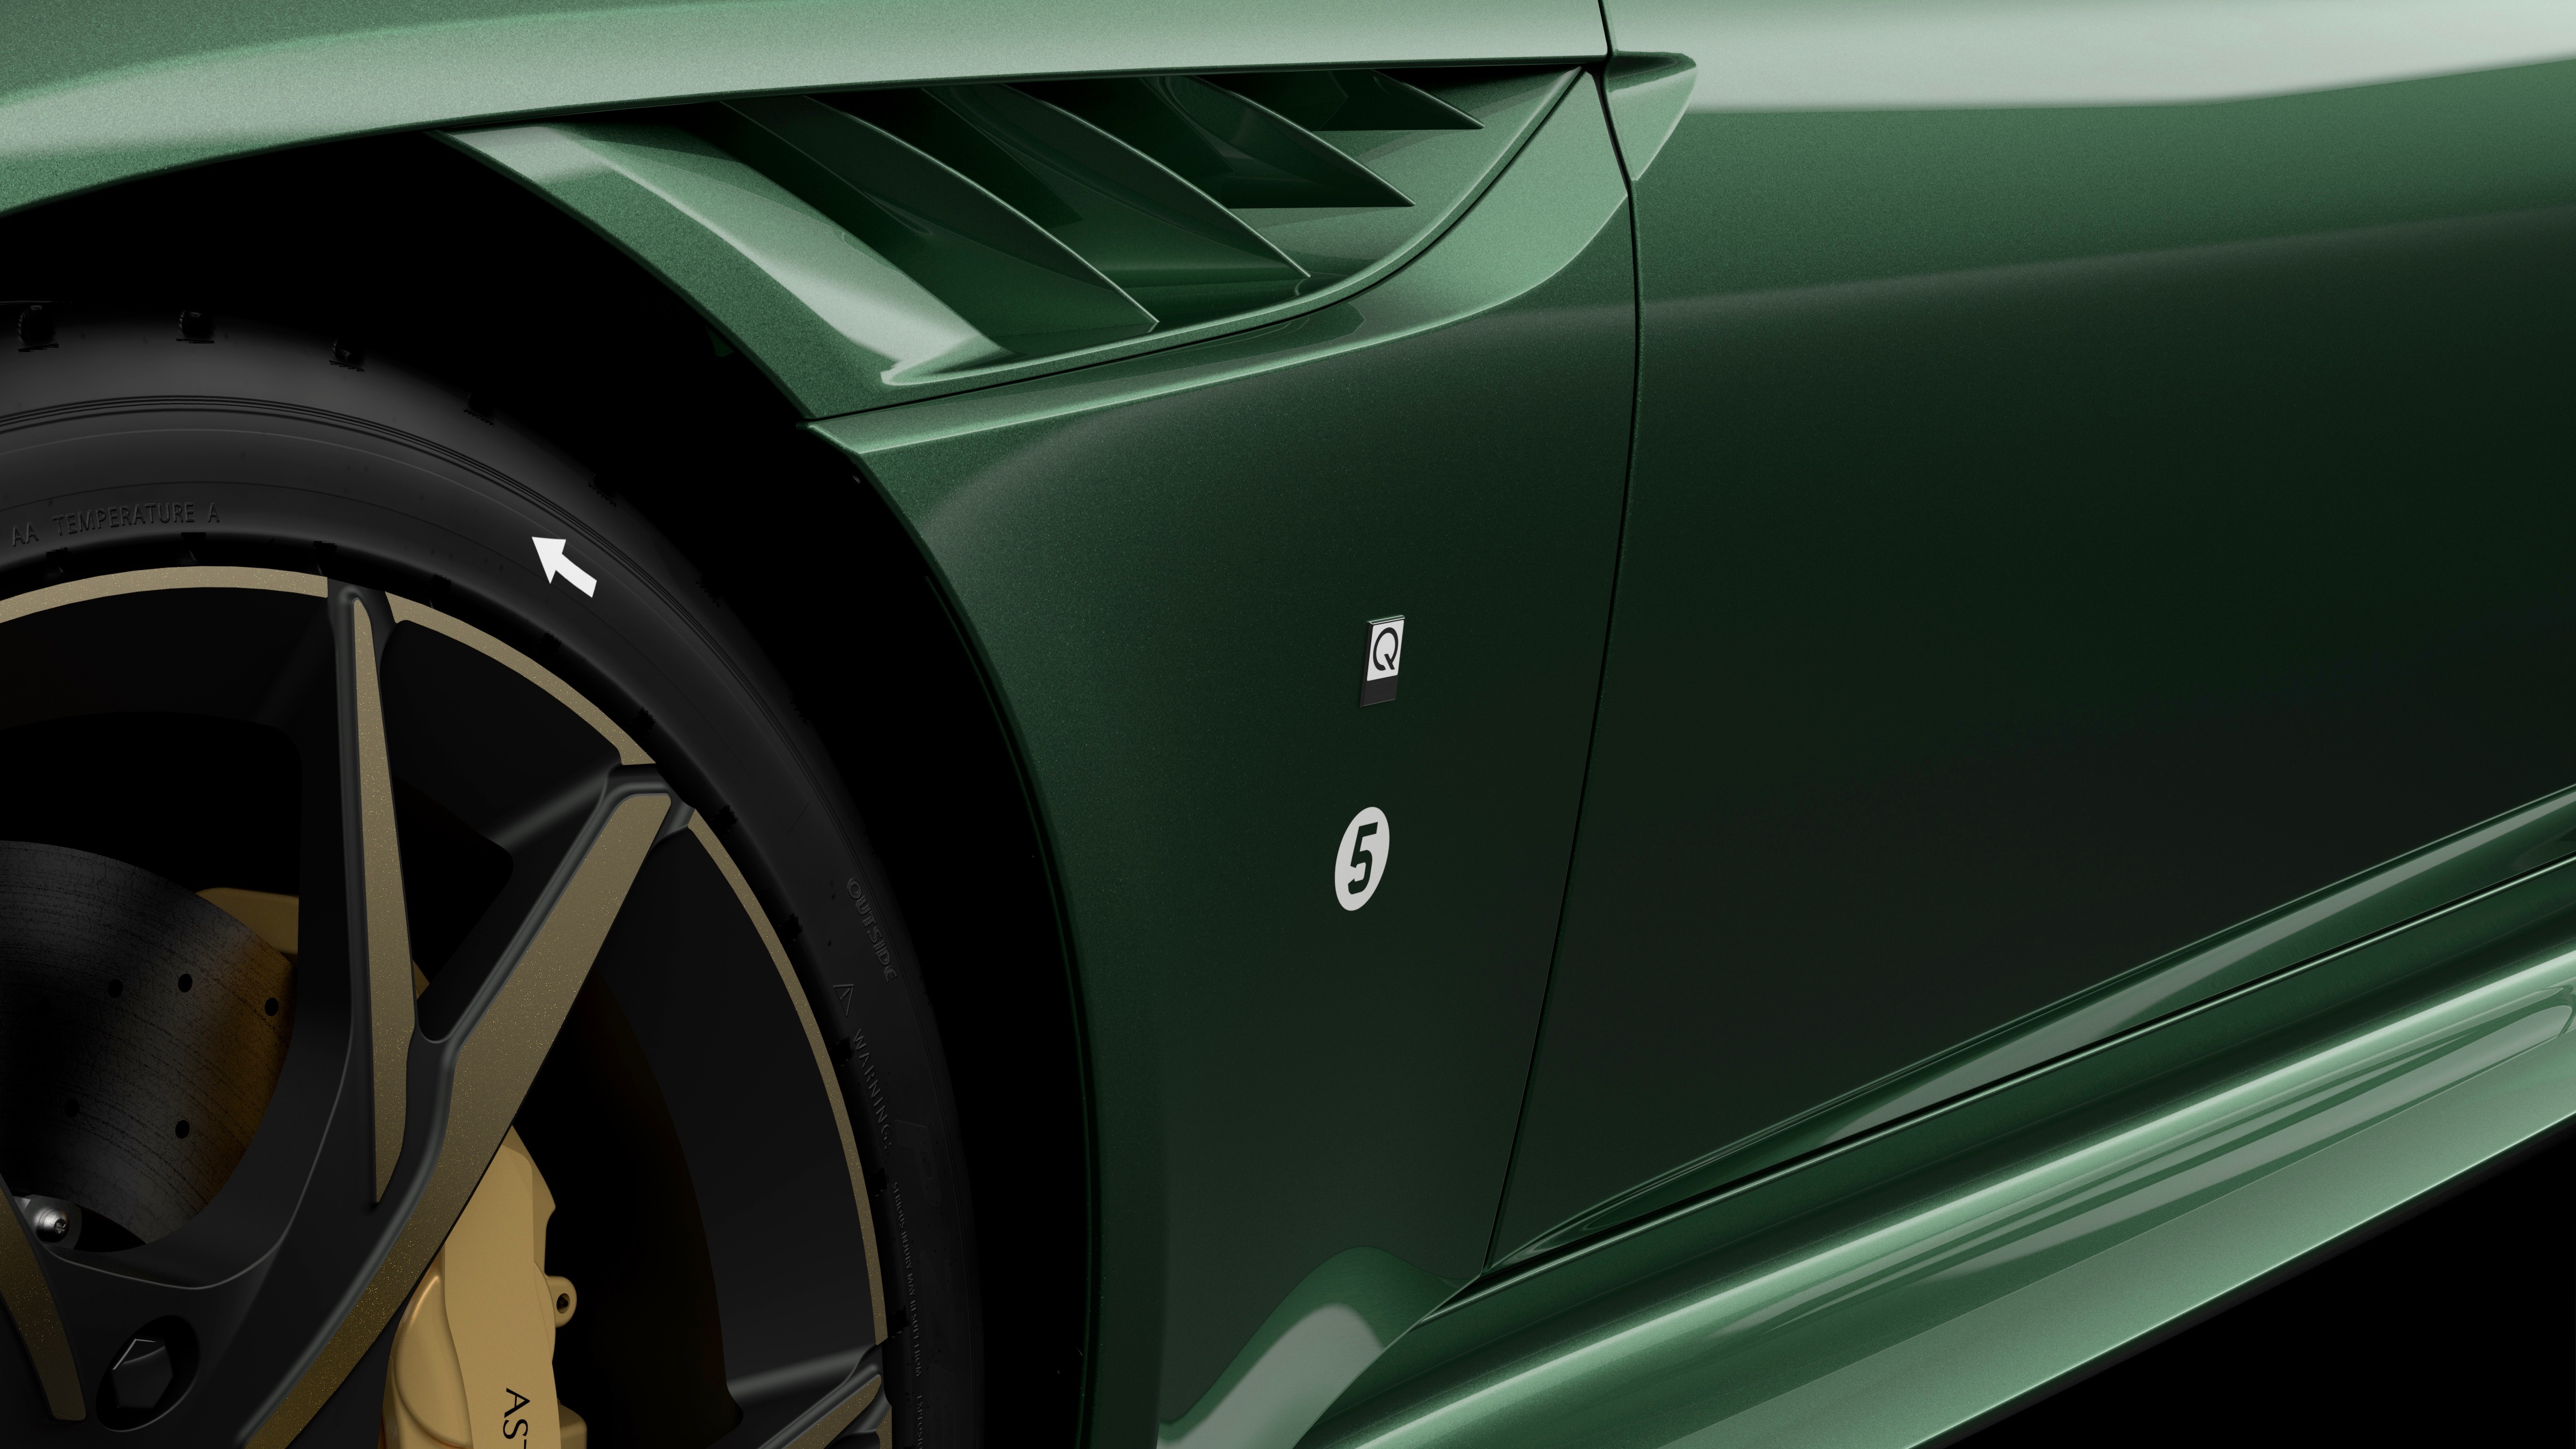 Aston Martin, Aston Martin celebrates 1959 Le Mans victory with 24 special-edition cars, ClassicCars.com Journal